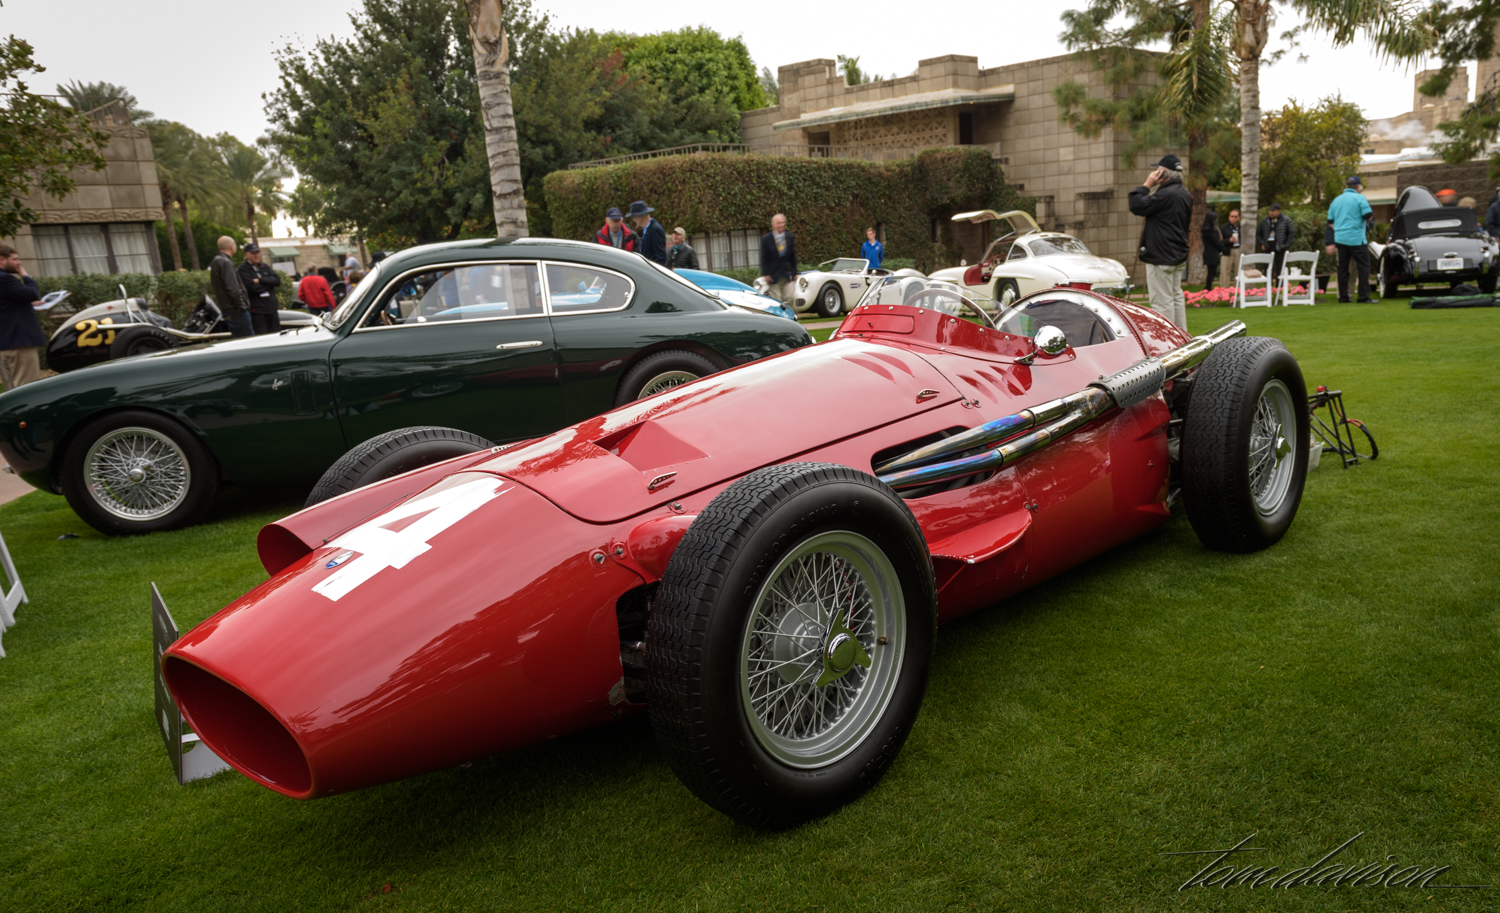 Mid-fifties Grand Prix racer.